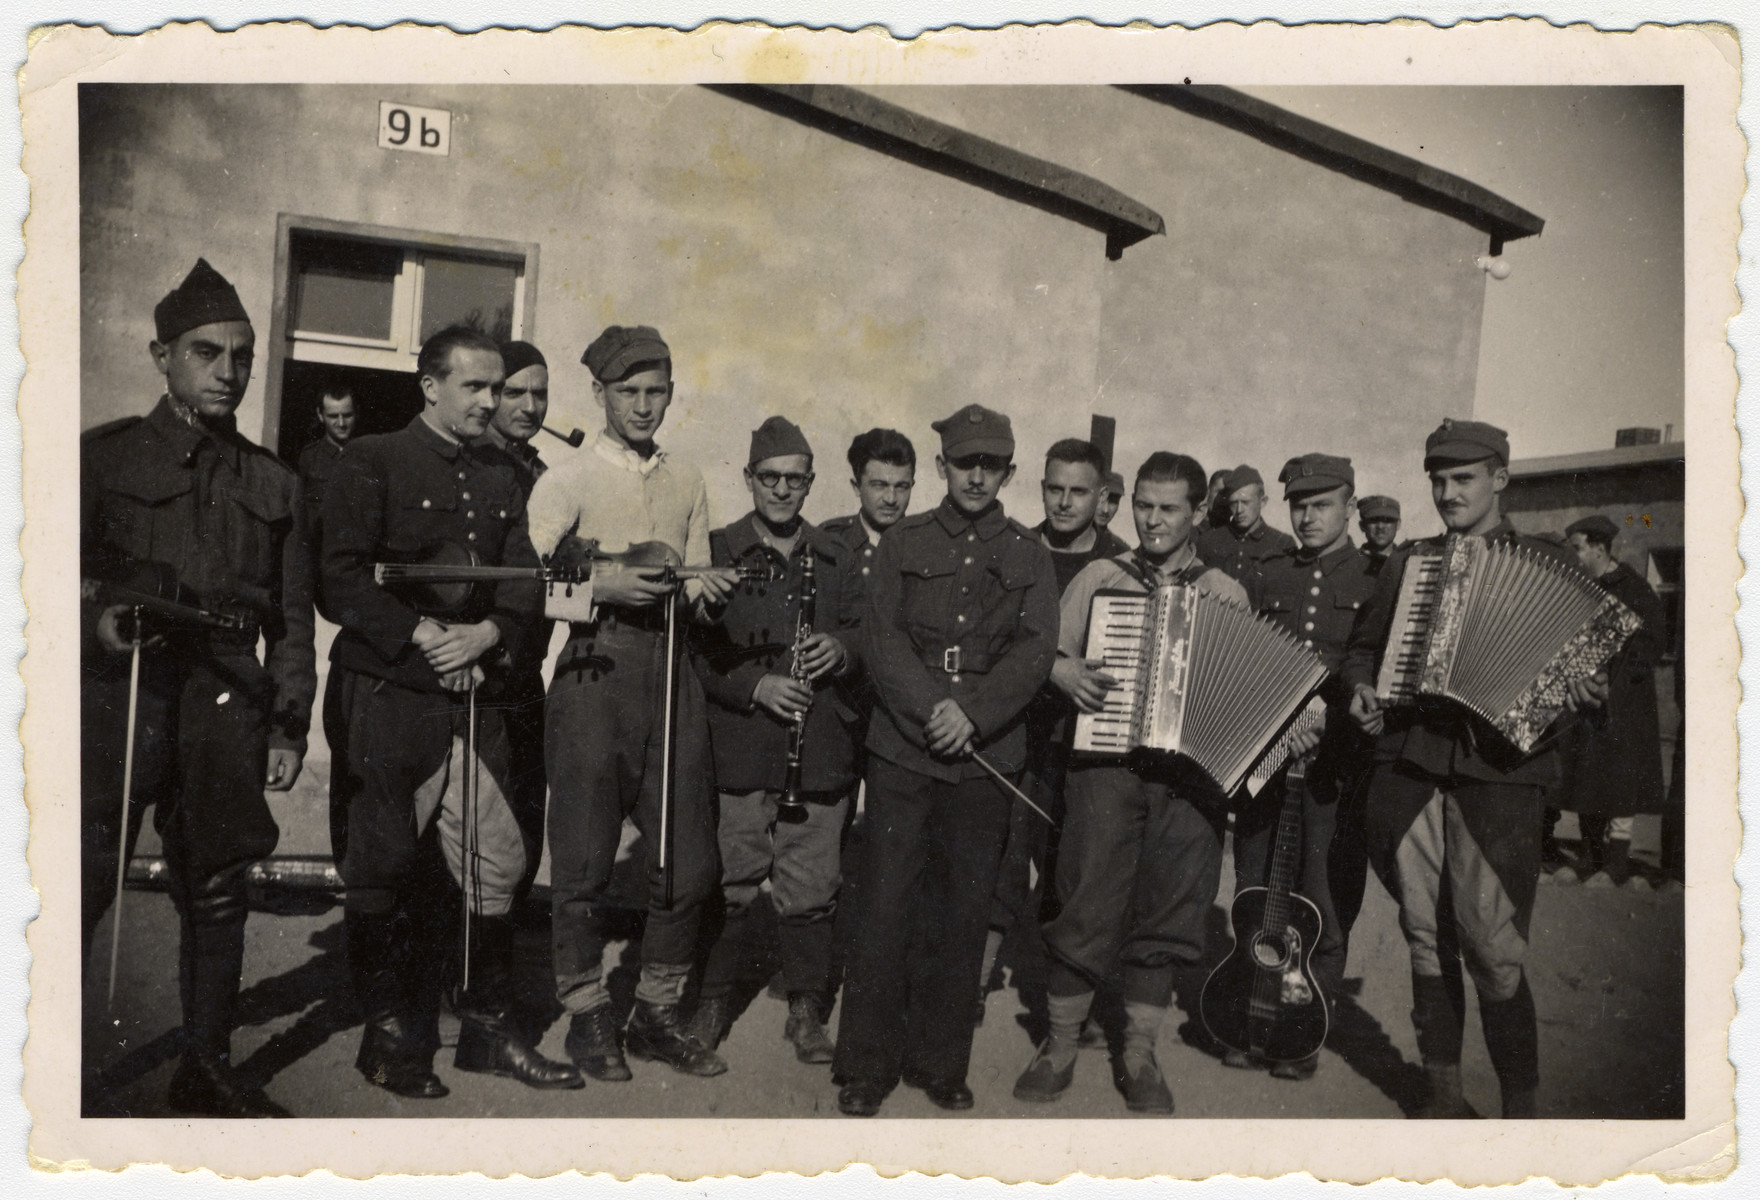 Group portrait of Polish prisoners-of-war holding musical instruments.  Max Beker is pictured on the far left with his violin.  This photograph was taken shortly after he was taken captive and after one of his first meetings with other prisoner muscians.